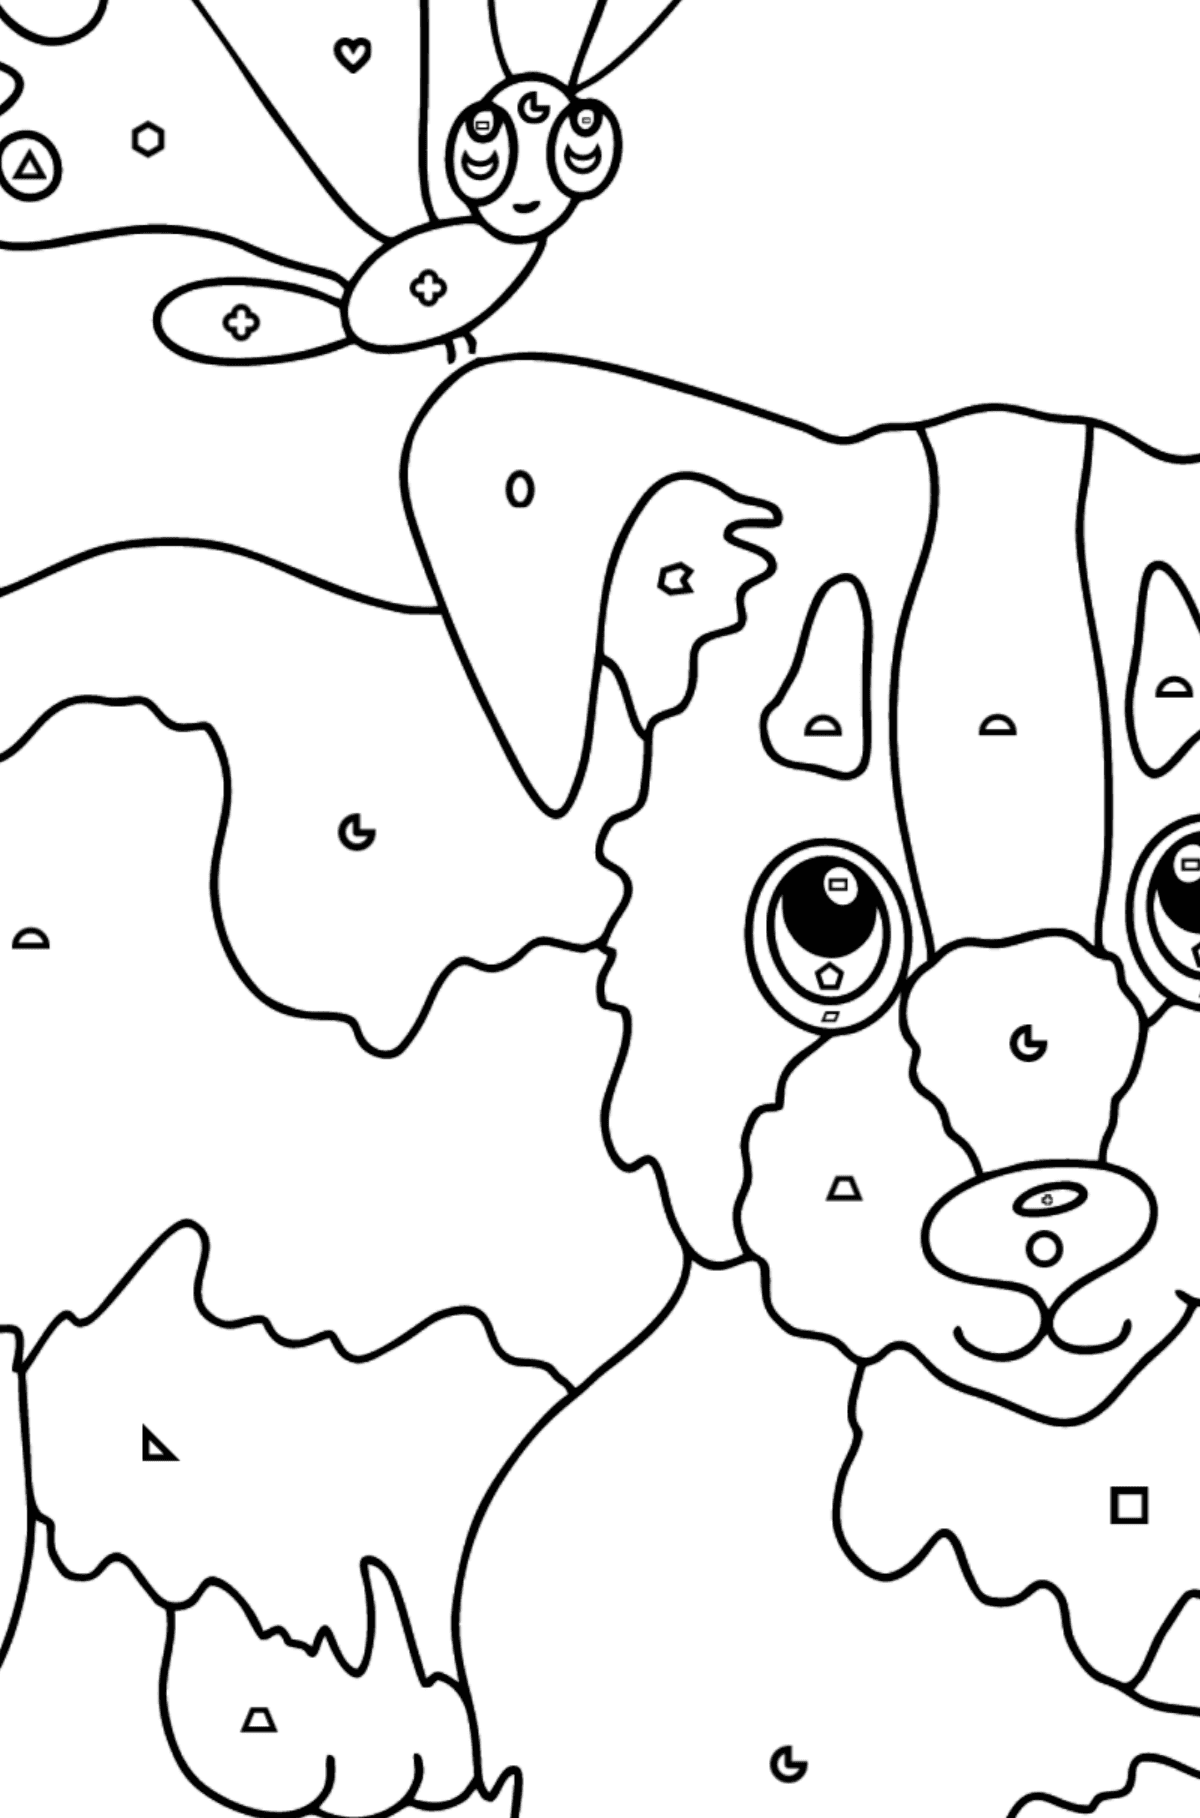 Coloring Page - A Dog is Playing with a Butterfly - Coloring by Geometric Shapes for Kids